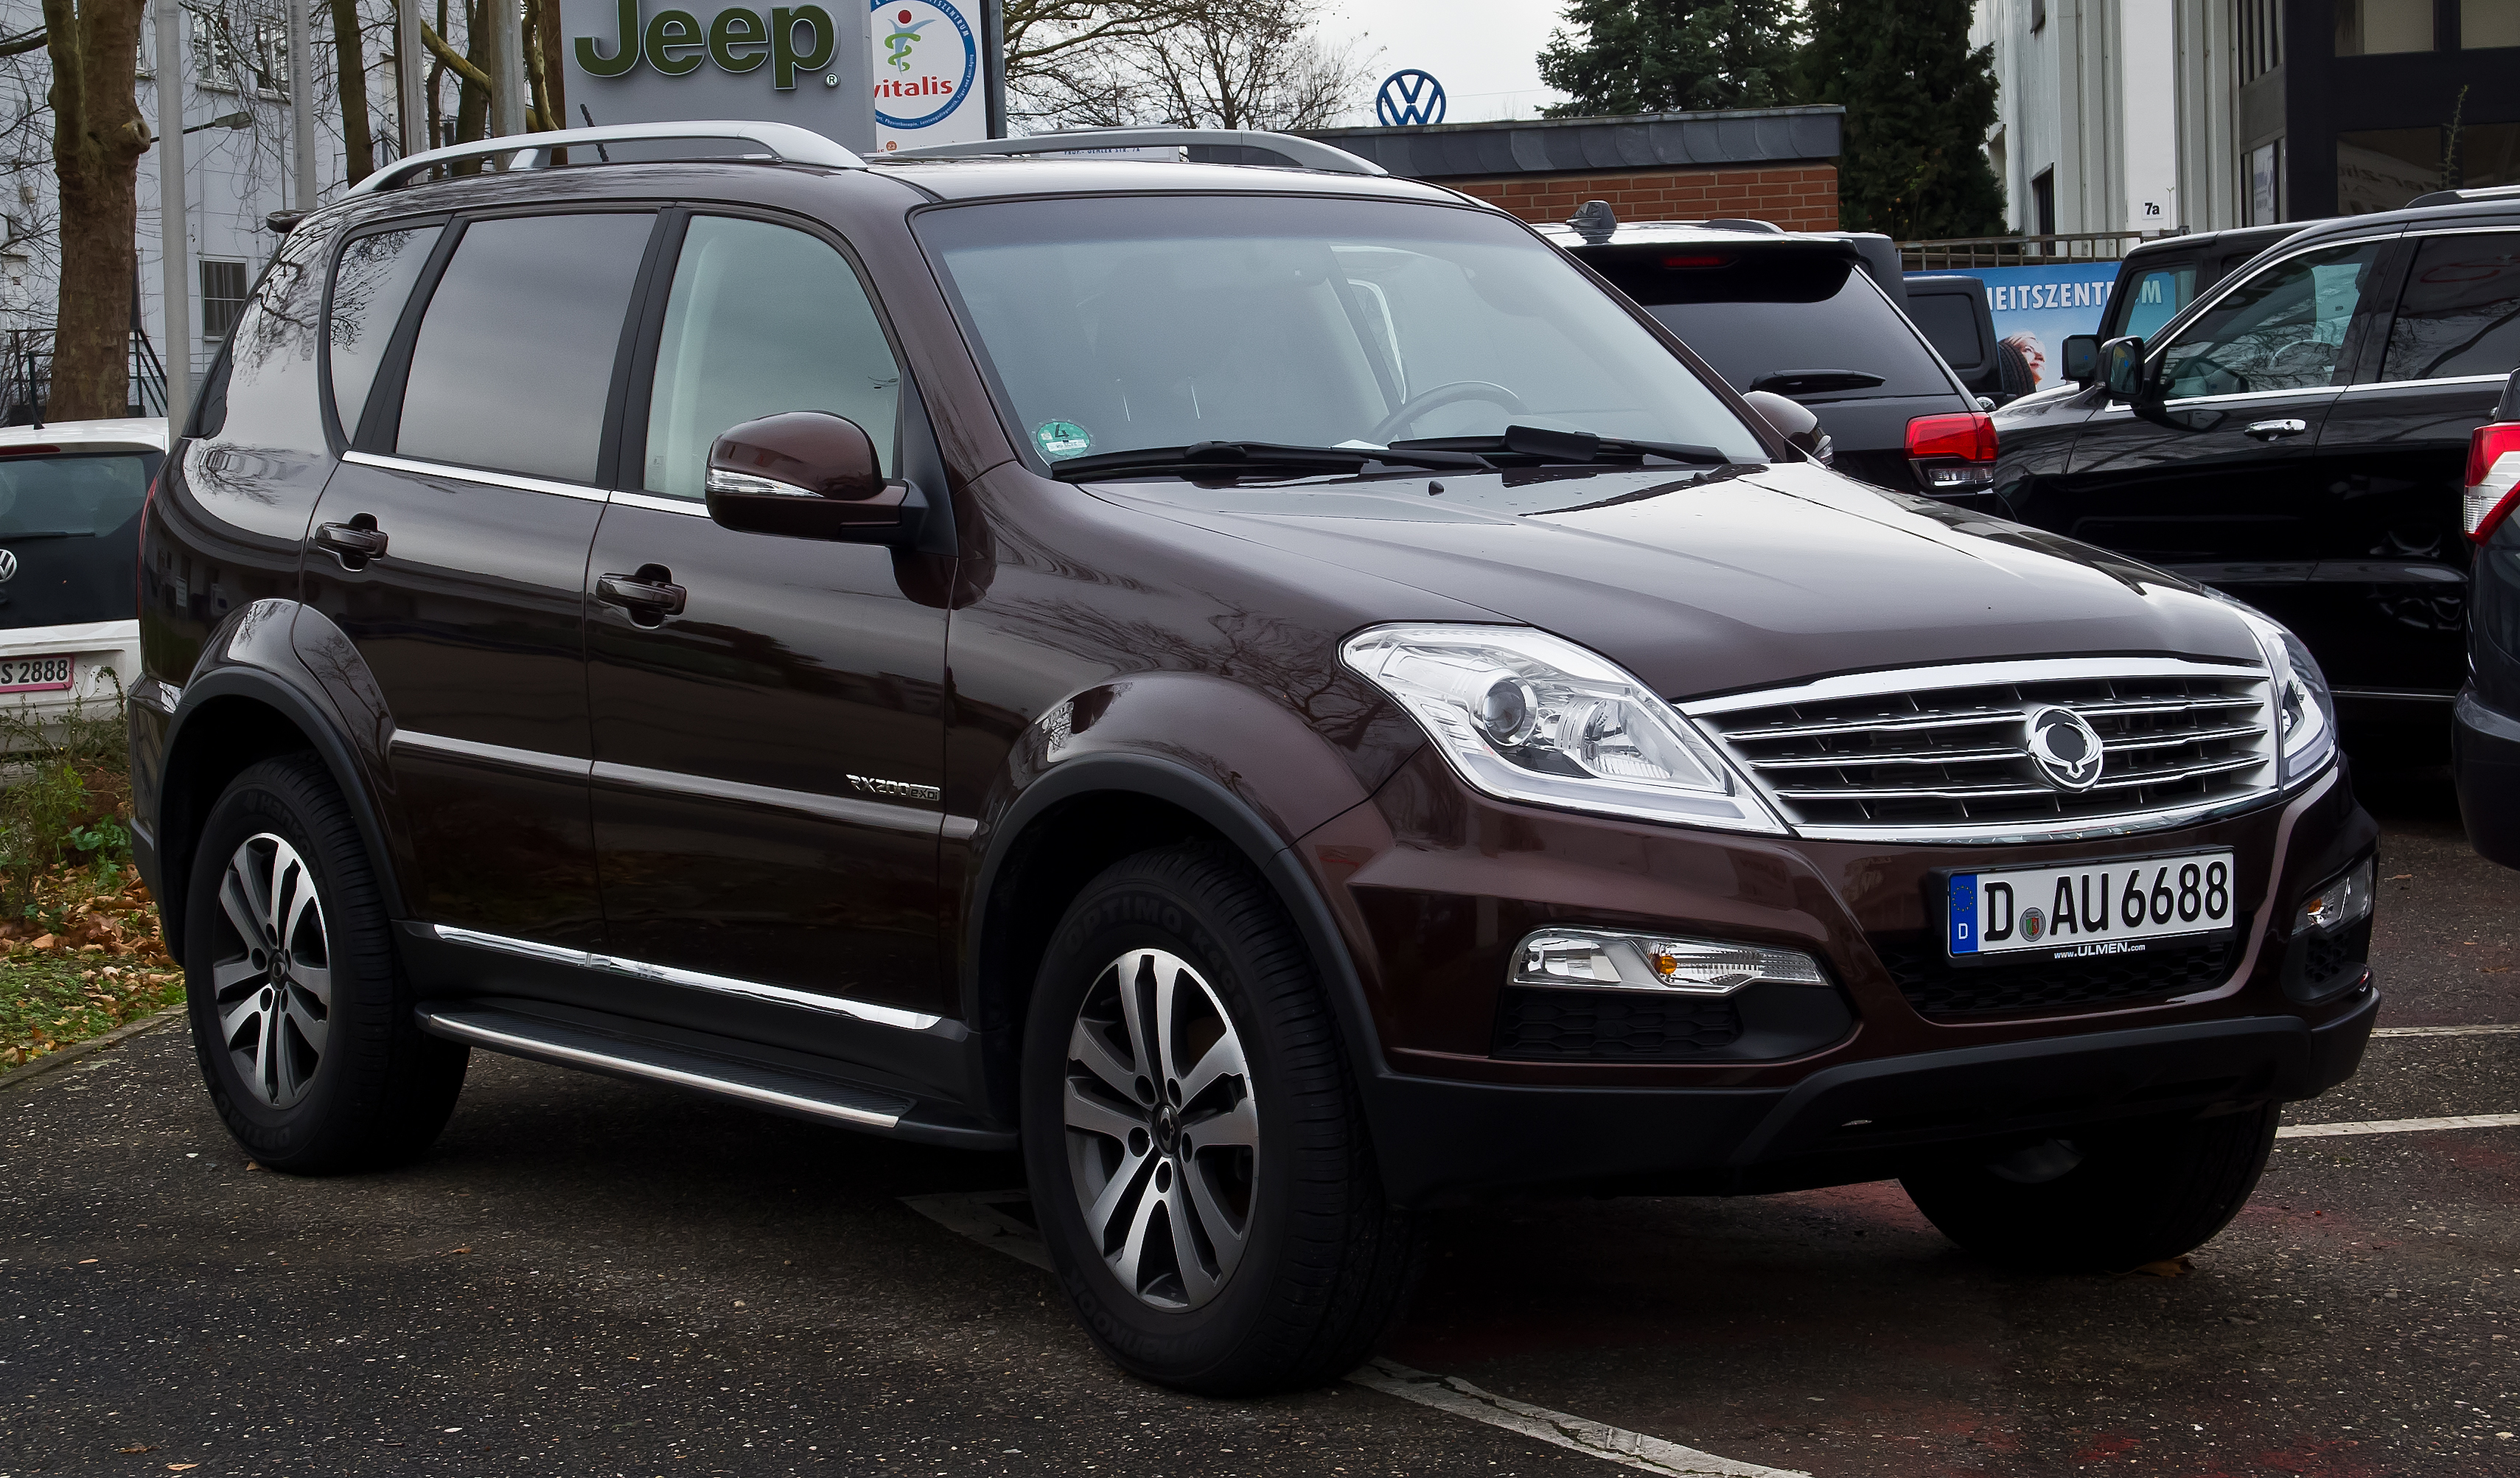 ssangyong kyron ii 2012 #4